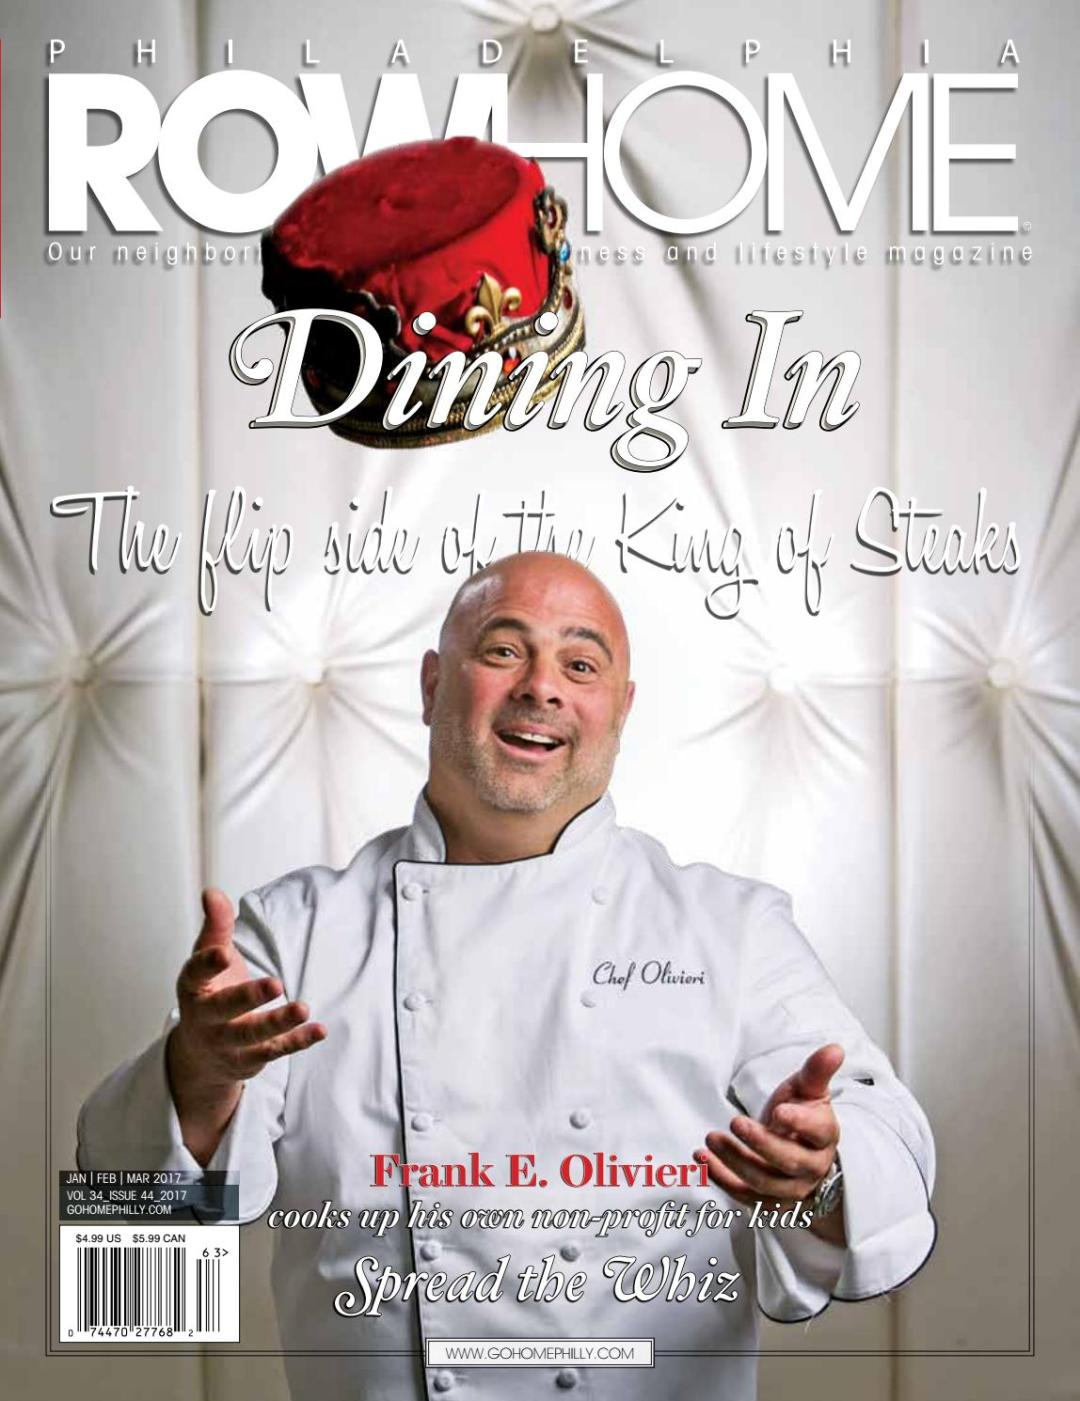 Frankie on cover of RowHome